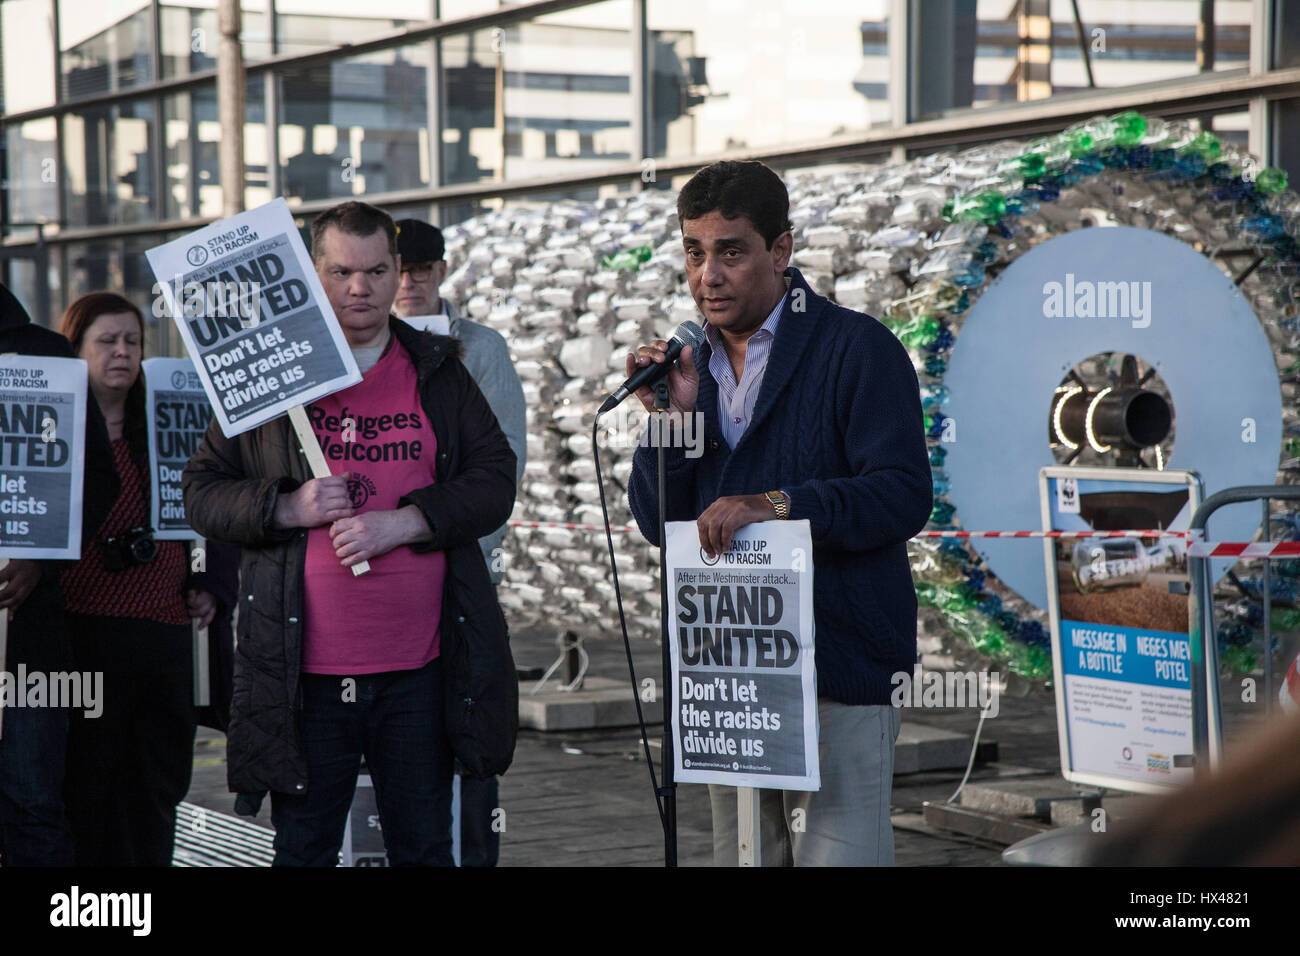 Cardiff, UK. 24th March, 2017. Vigil held outside of the Senedd in Cardiff by faith groups to show solidarity with - Stock Image